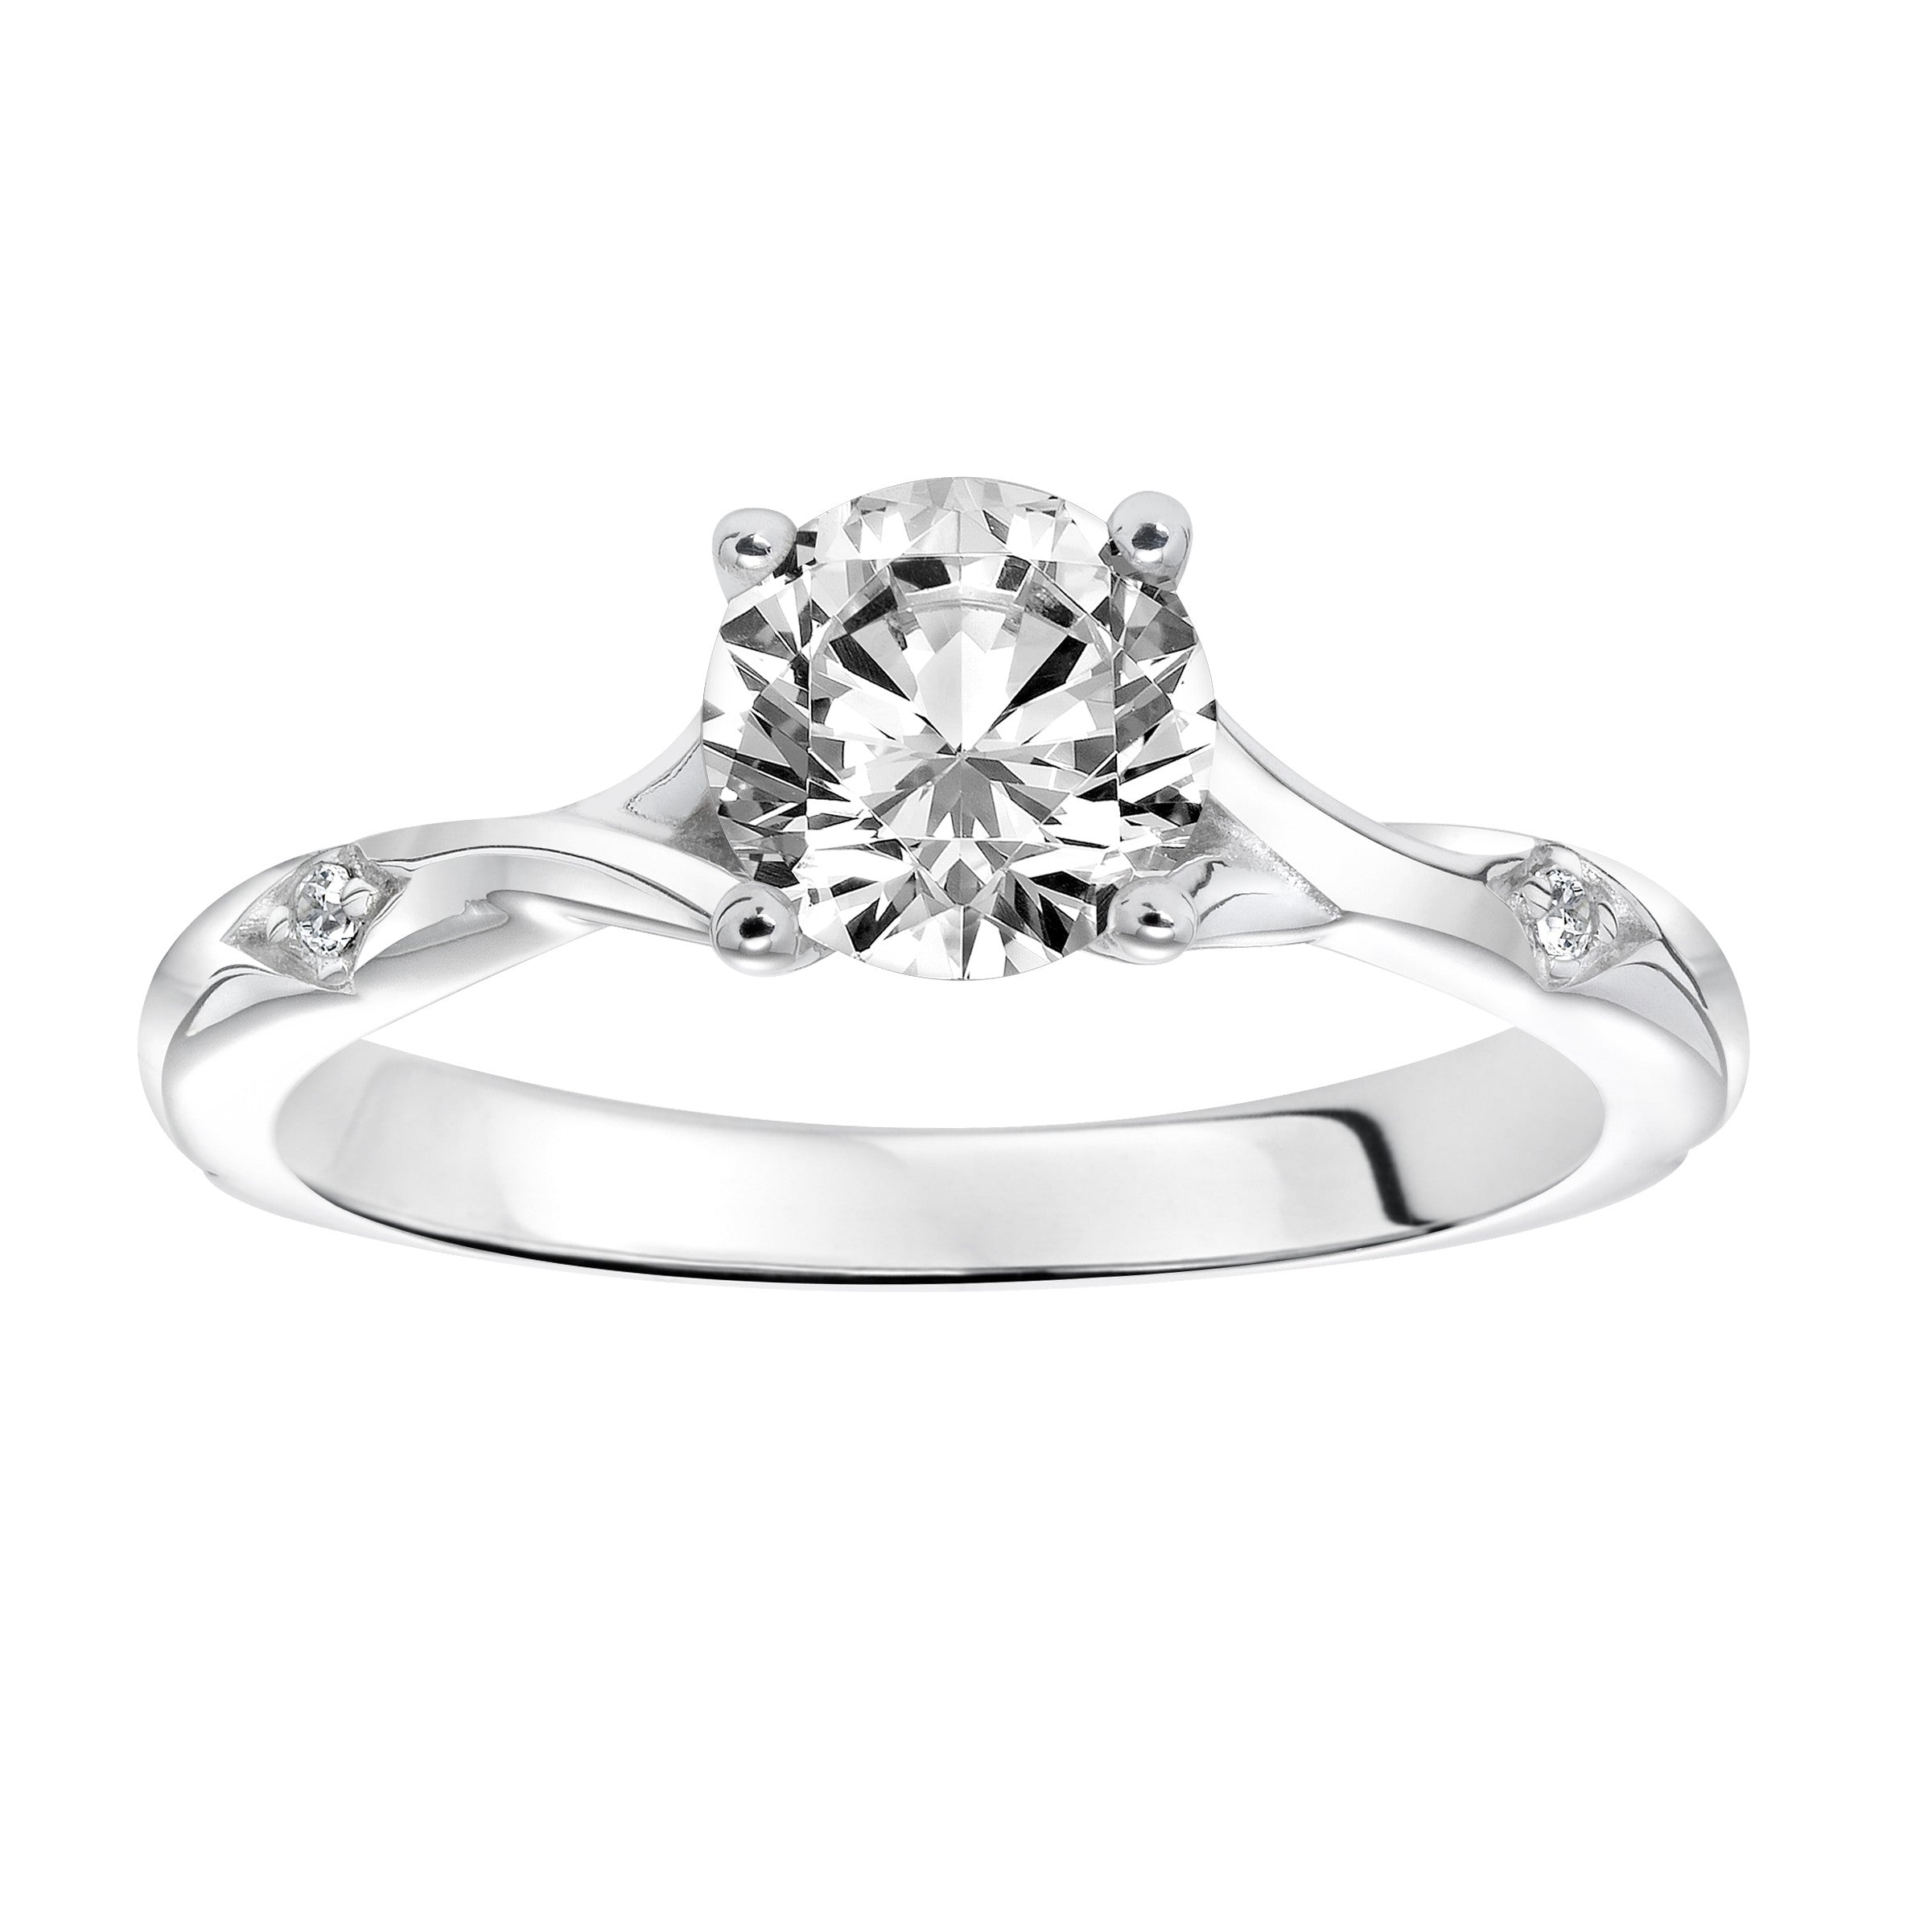 shopping pin from ring walk extra engagement halo an the to band perfect when what twisted s unique this know sparkly rings you double for here